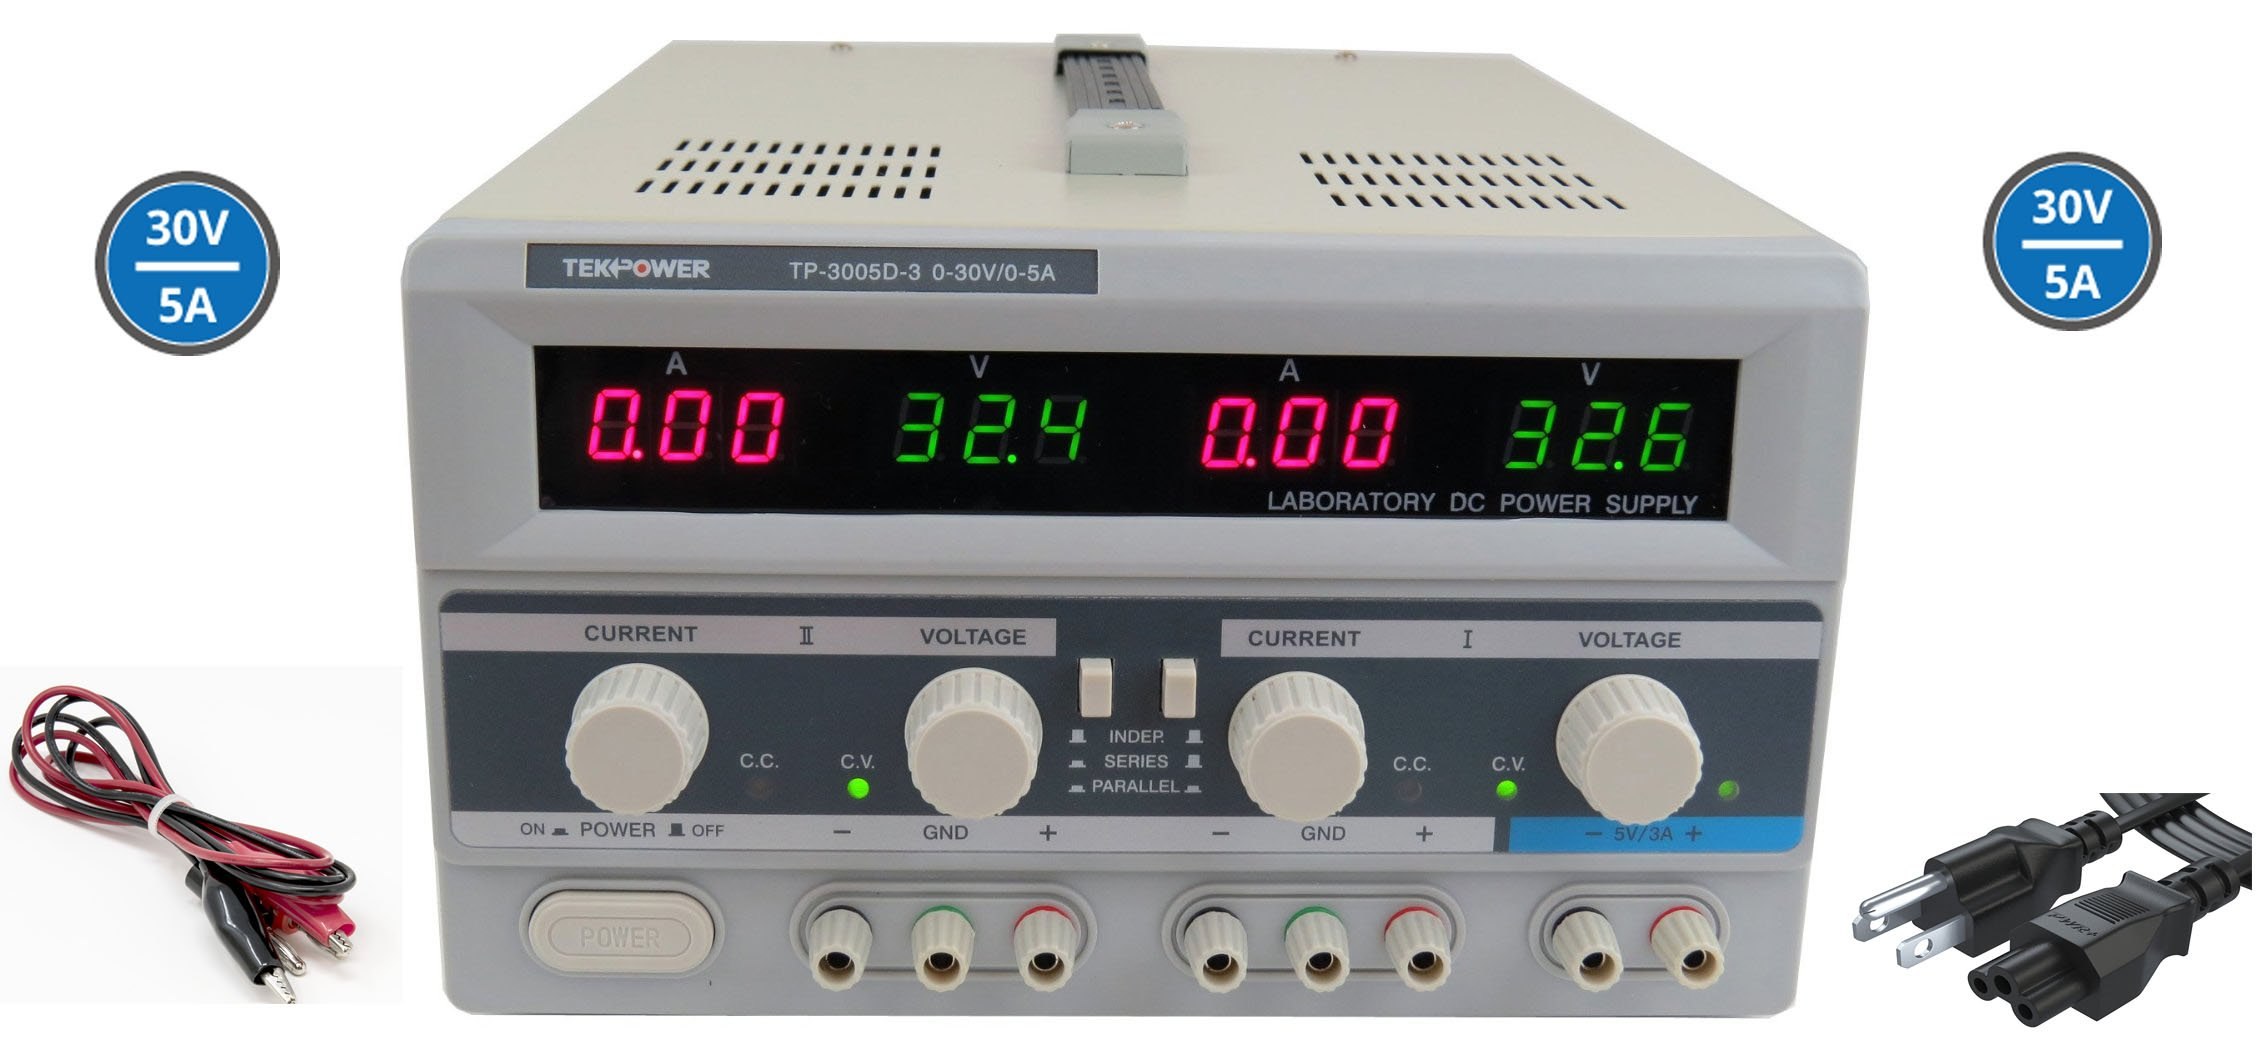 Tekpower TP3005D-3 Digital Variable Triple Outputs Linear-type DC Power Supply, 0-30 Volts @ 0-5 Amps